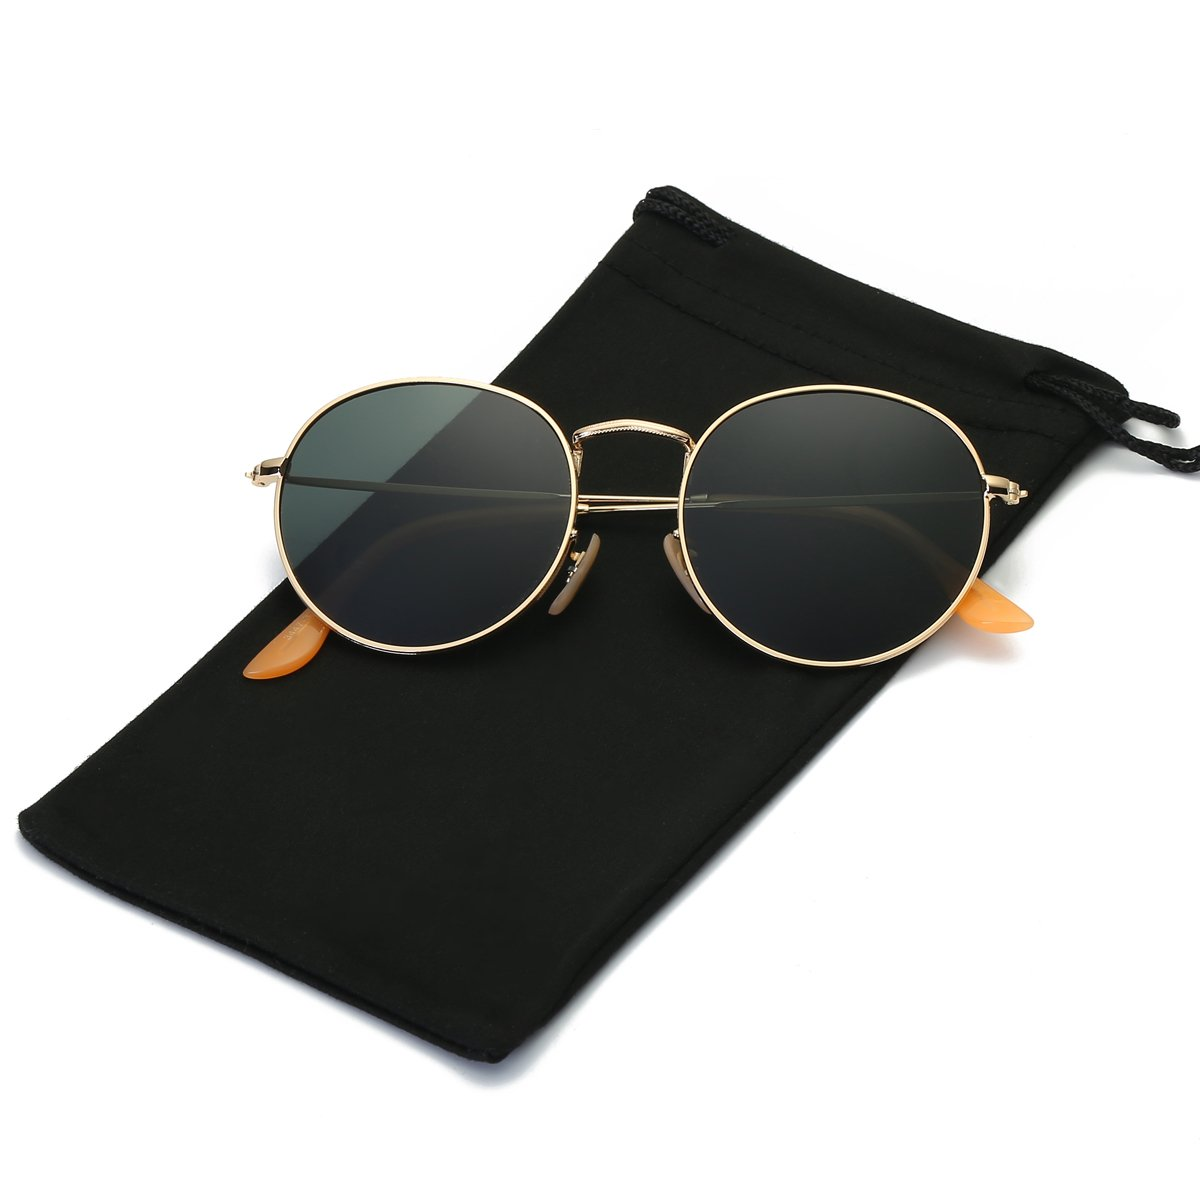 LKEYE Small Unisex Classic Vintage Round Mirror Lens Polarized Sunglasses LK1702 3447 Gold Frame/Dark green Lens by LKEYE